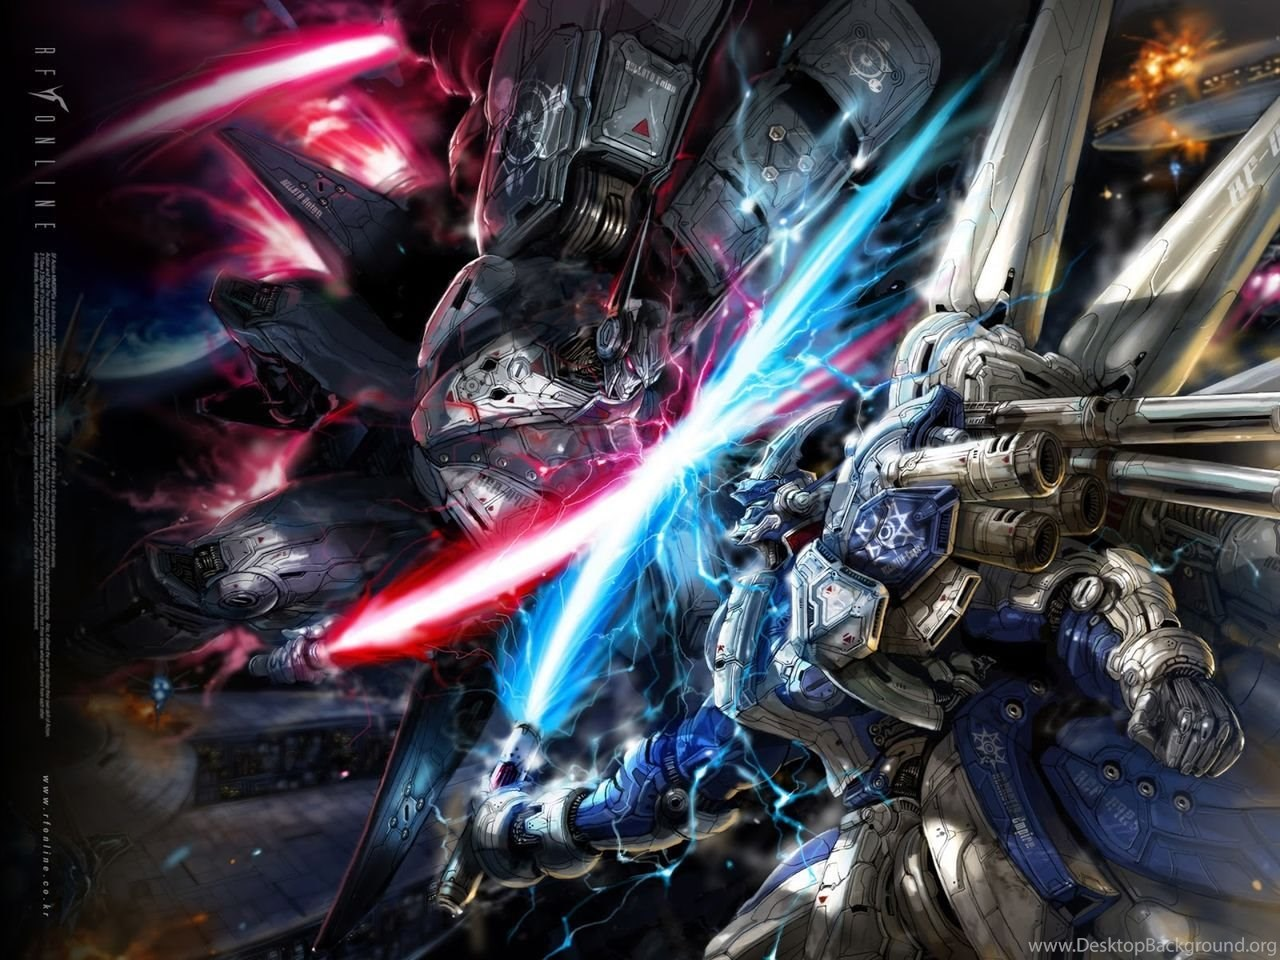 Overlord Anime High Resolution Wallpapers Attachment 7955 Desktop Background